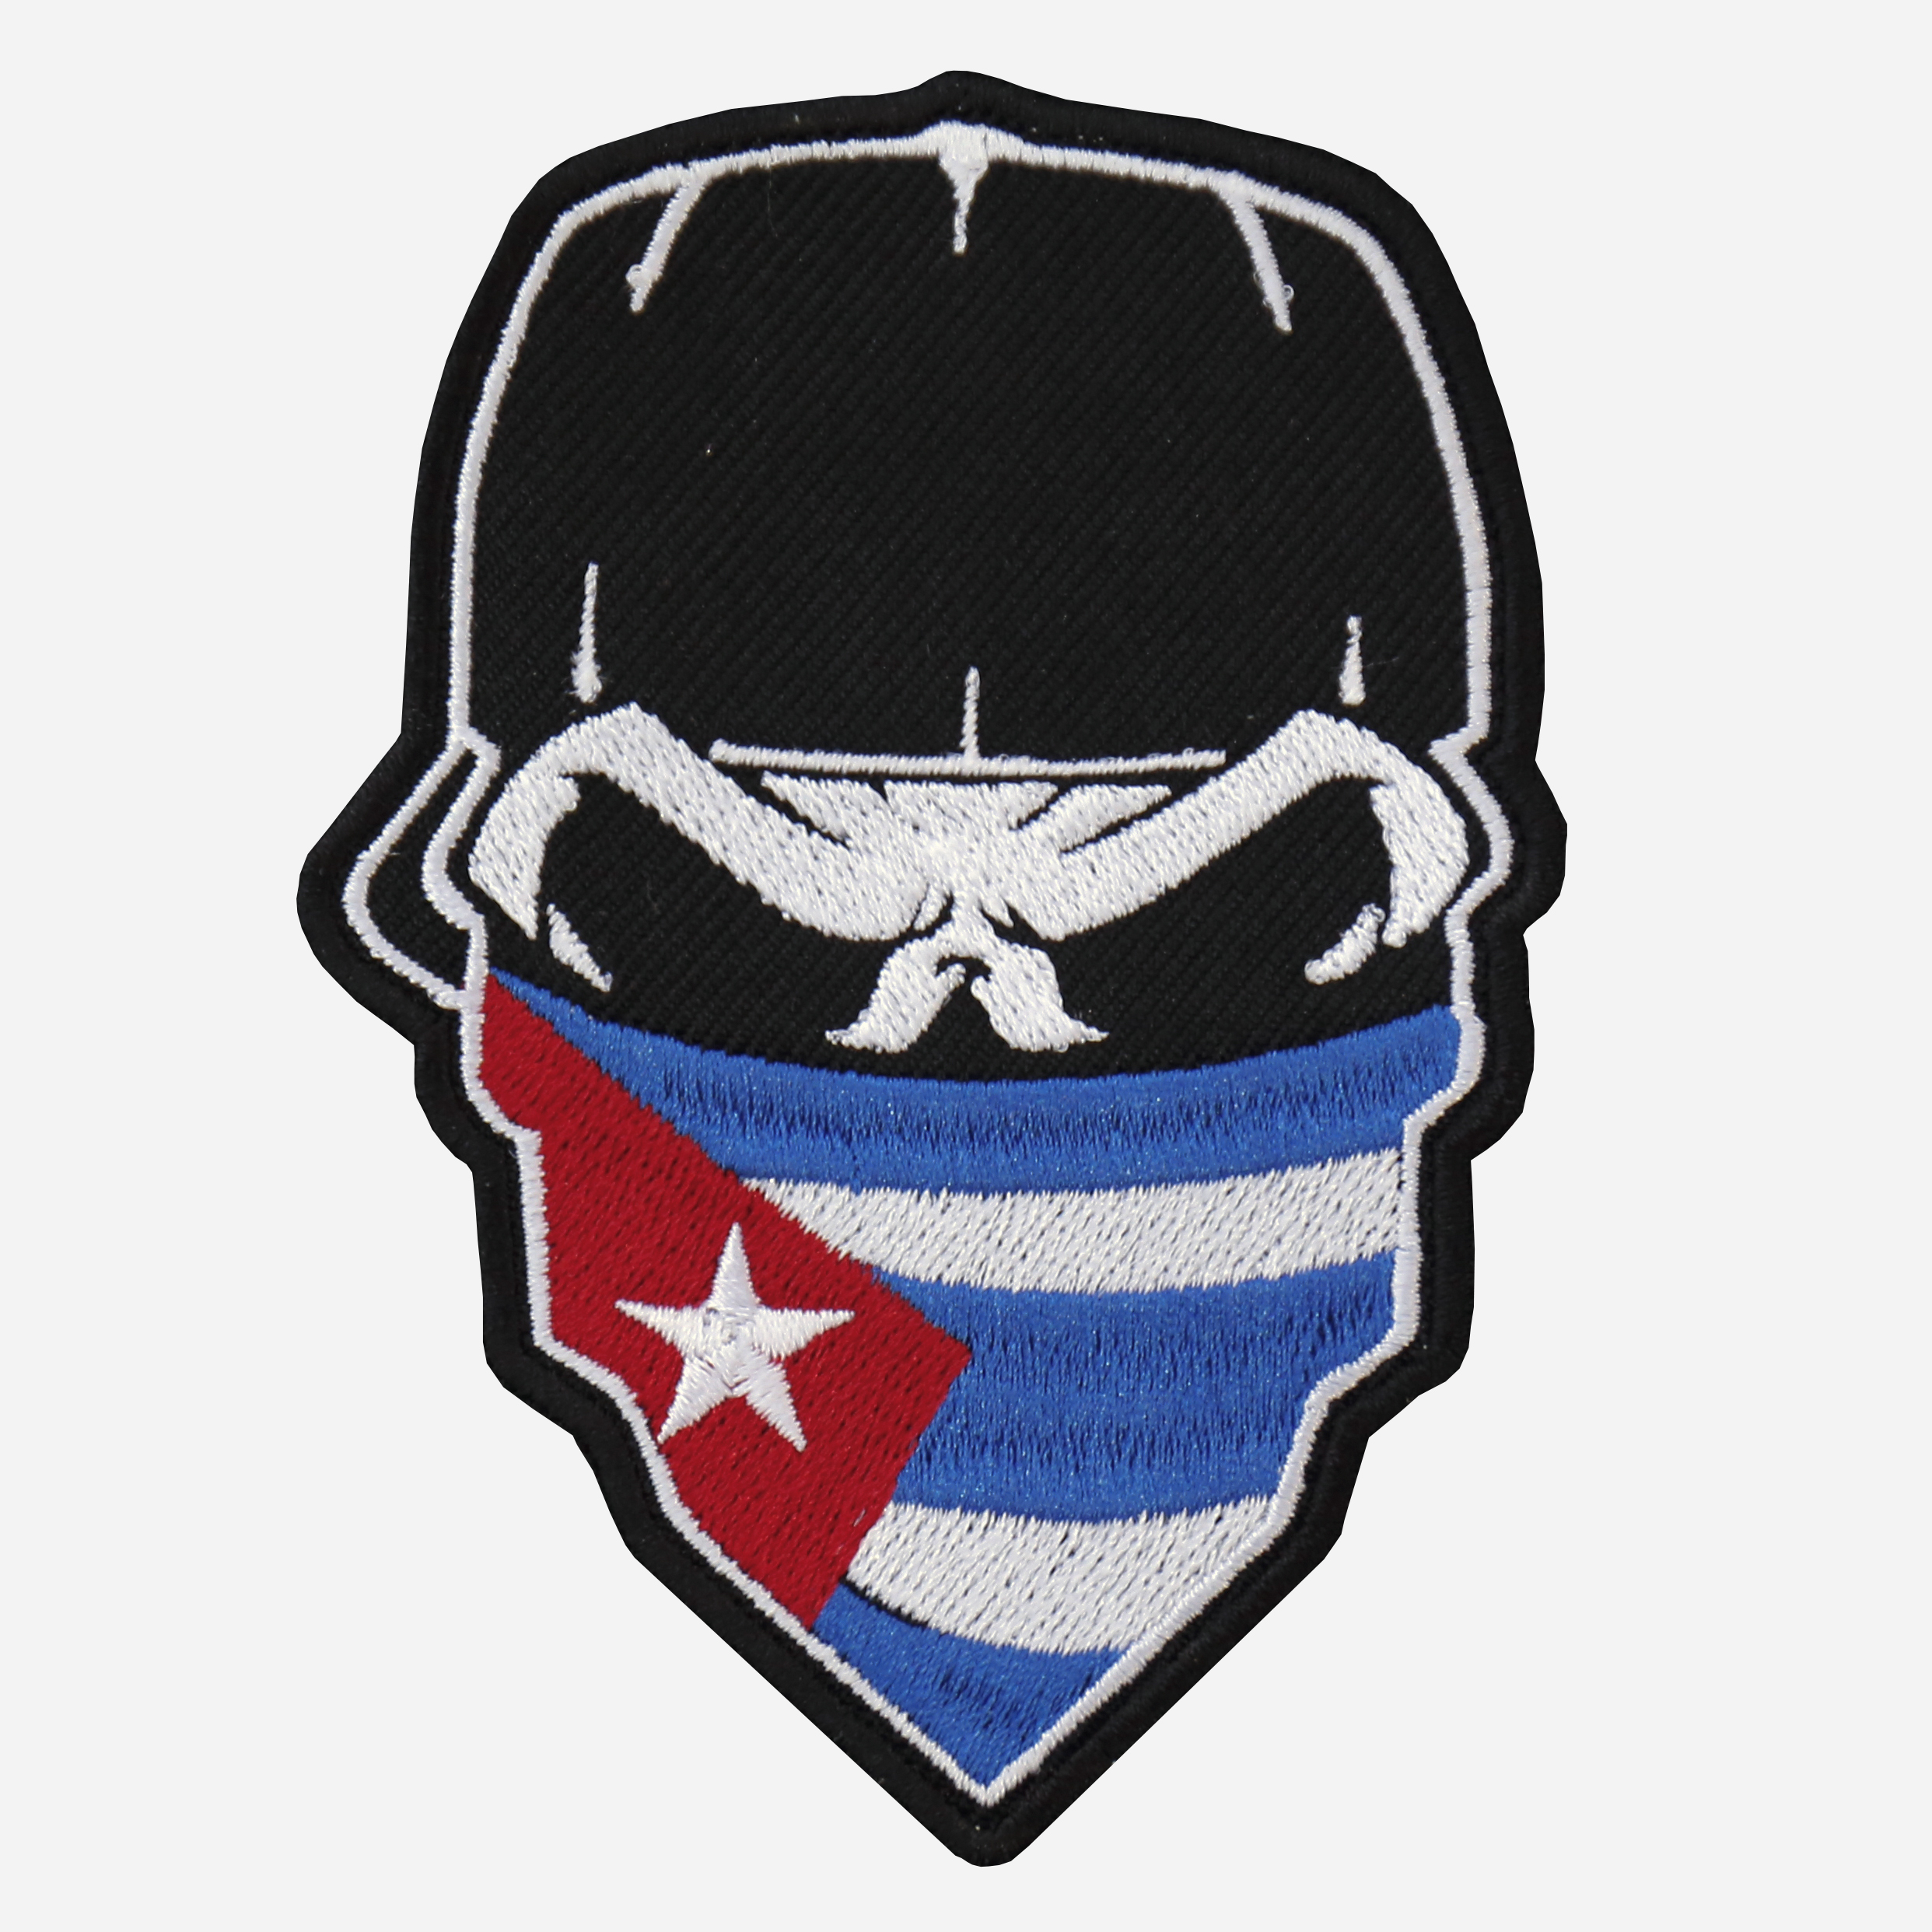 Skull with Cap and Cuban Flag Bandanna embroidered Patch